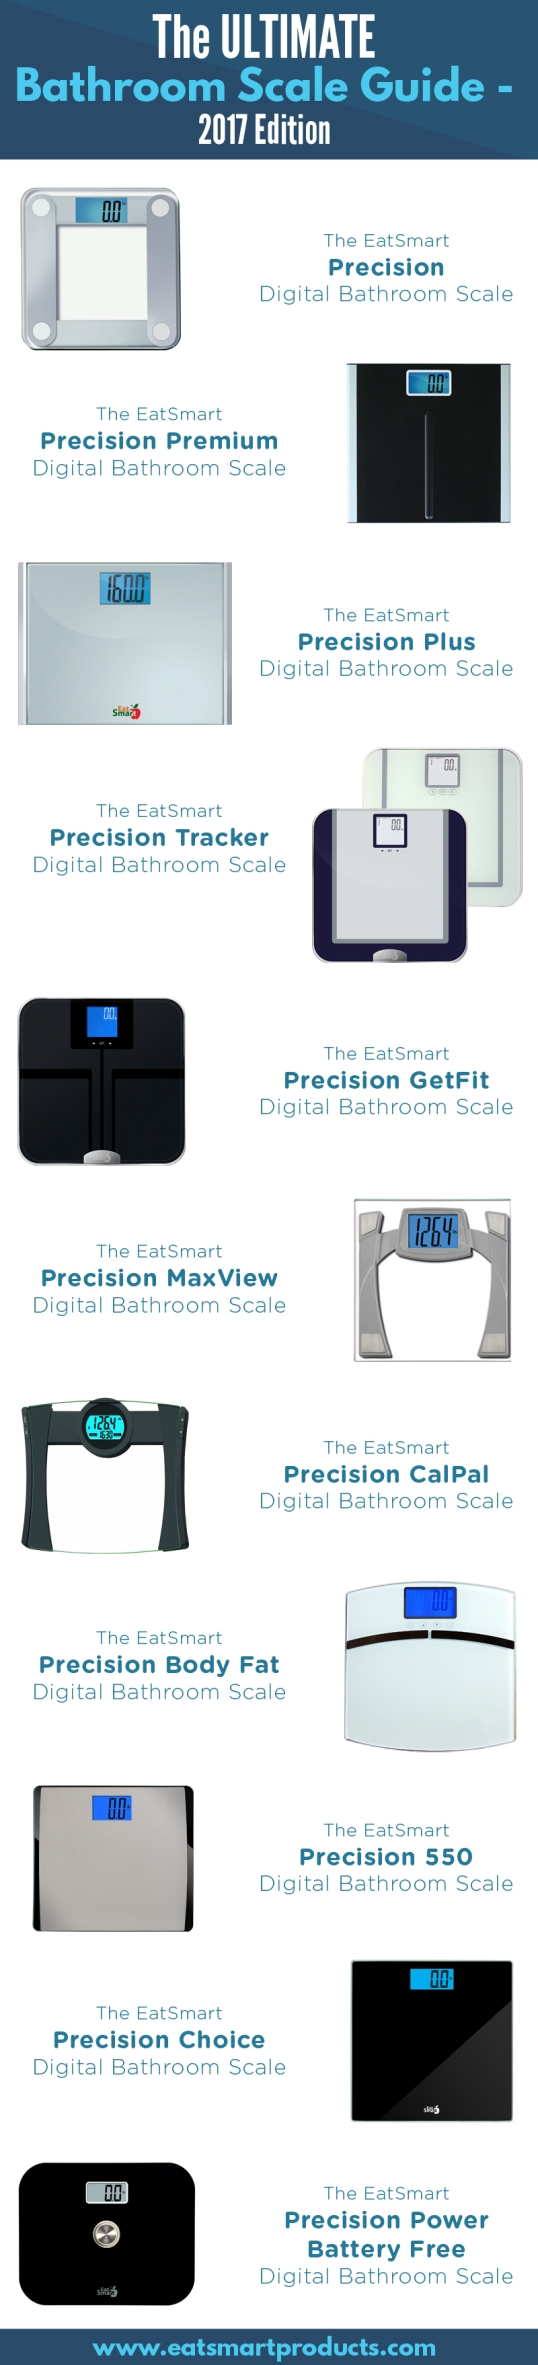 esp_ultimate_bathroom_scale_guide_list